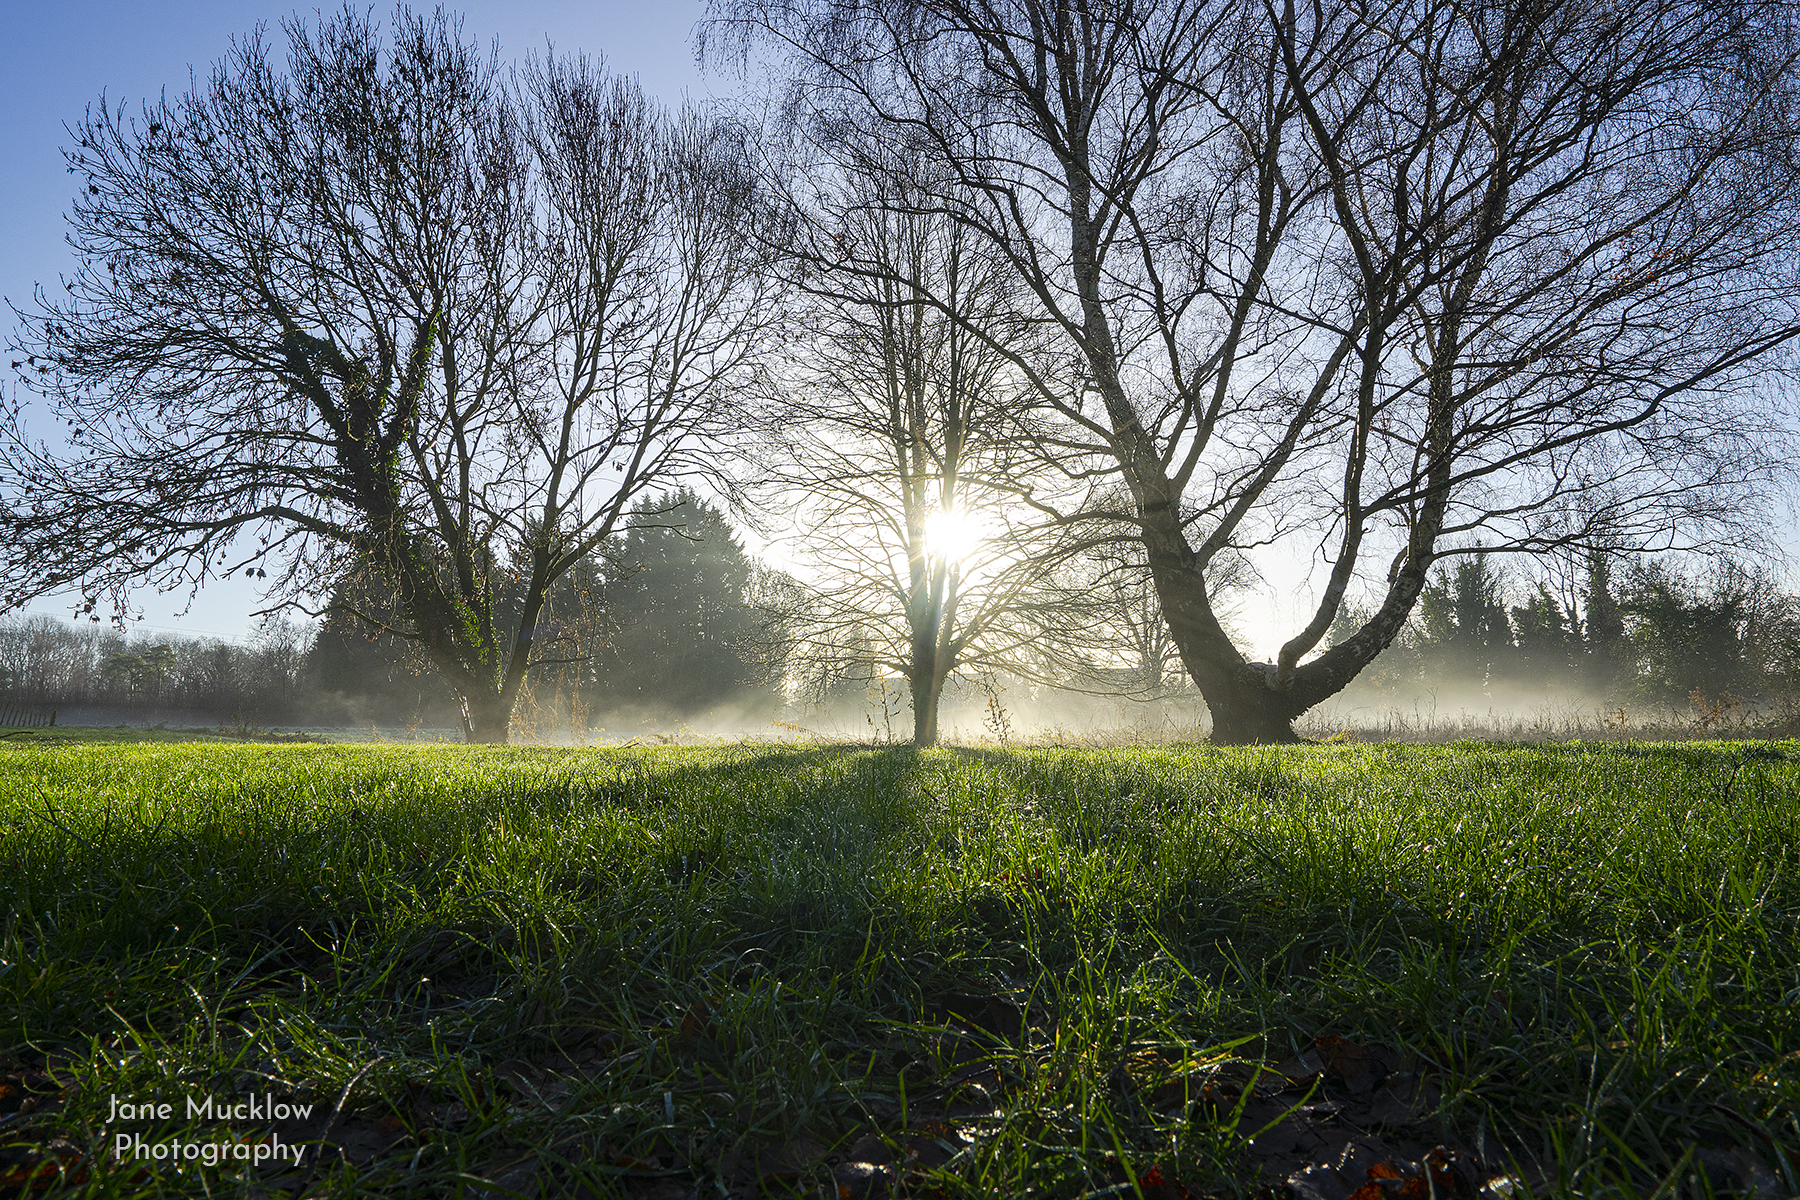 Photo by Jane Mucklow of a misty, frosty winter morning, view across the palace field, Otford, Kent